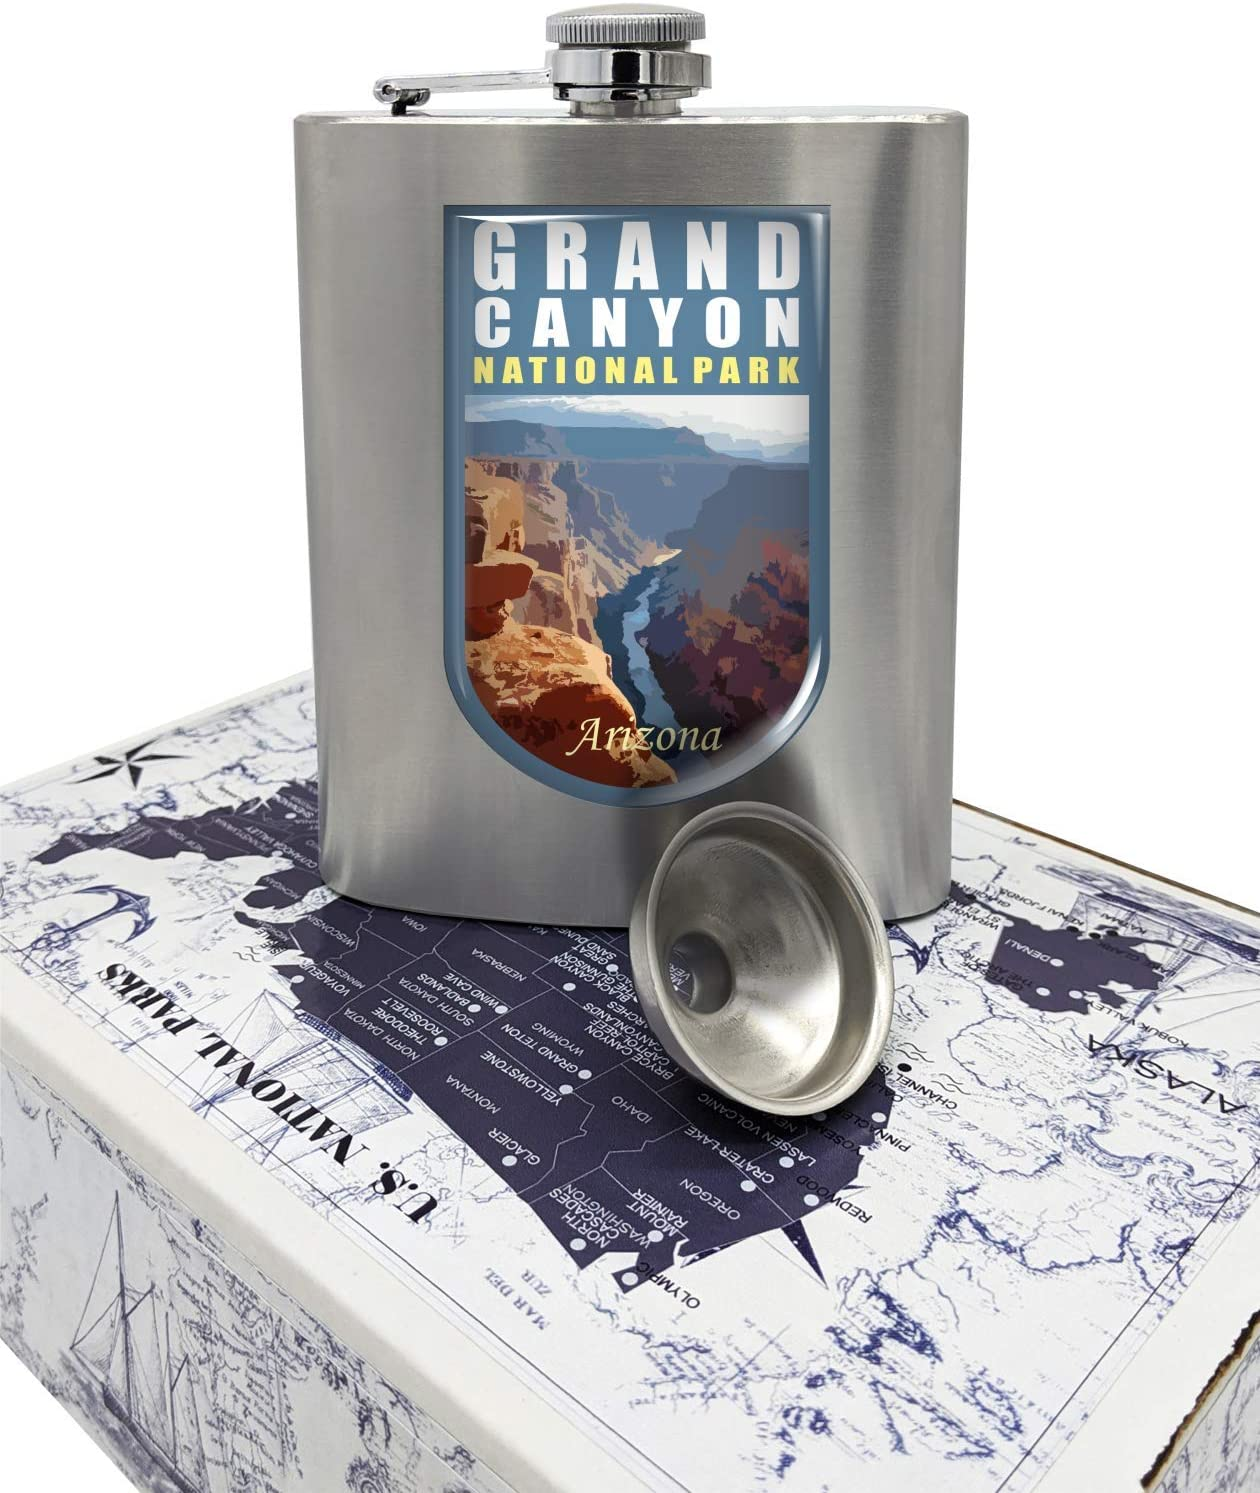 ProStickersUSA Grand Canyon National Park 3D Emblem Flask Stainless Steel & Funnel Set, 8 oz in Gift Box